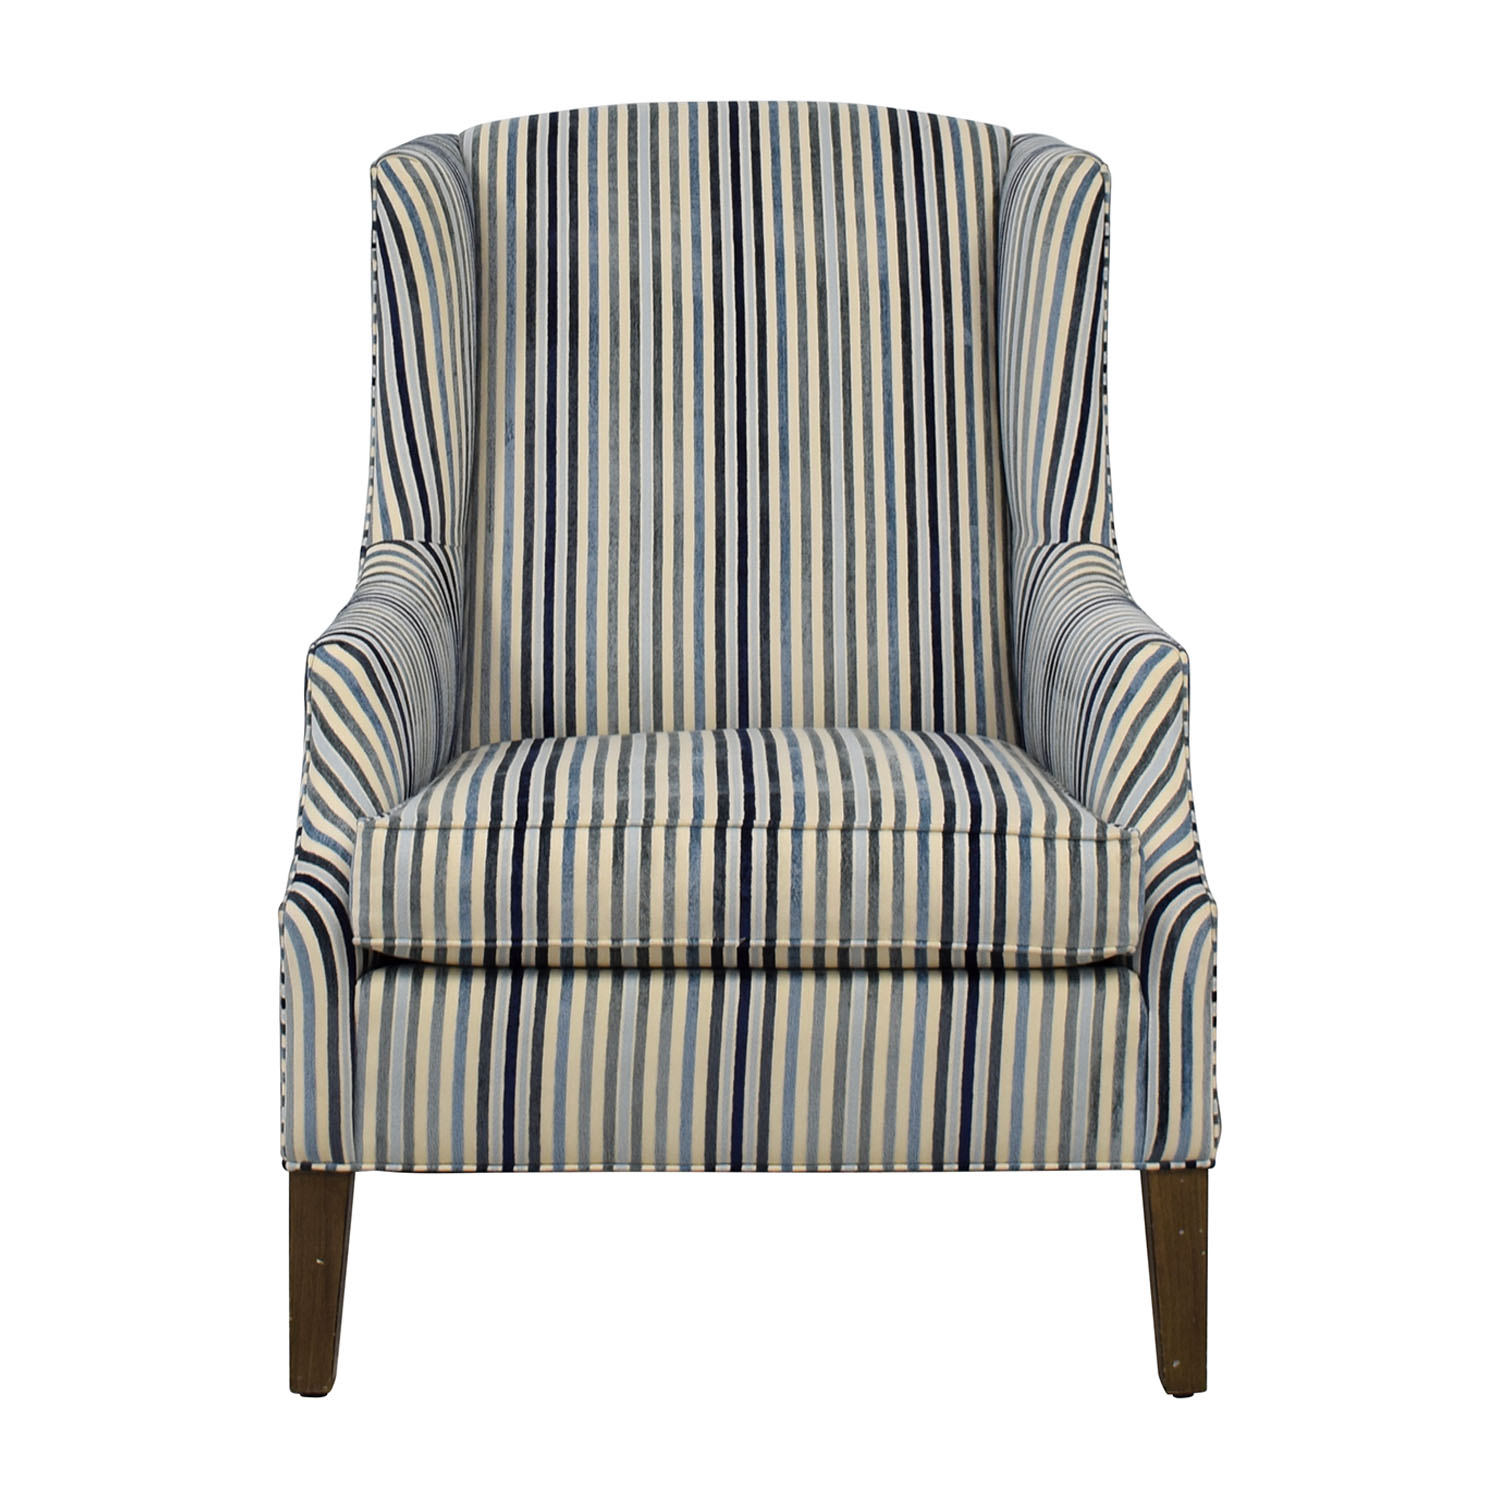 Ethan Allen Ethan Allen Custom Upholstered Striped Accent Chair Accent Chairs